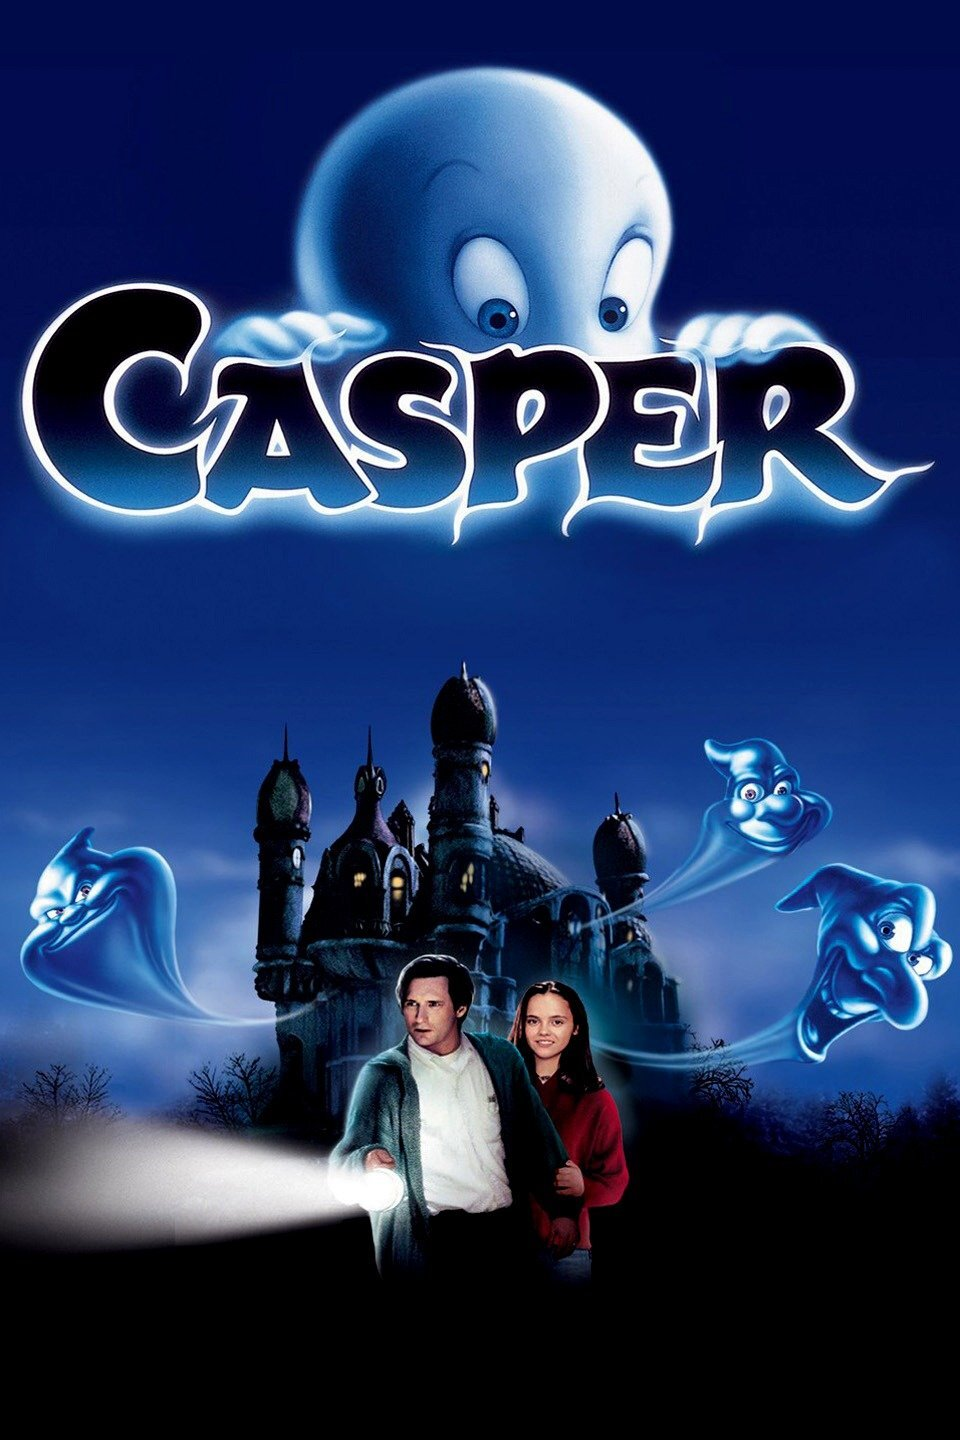 Casper - For the first time ever the Roxy is pleased to bring you FREE Fall Break Movies! Seats are first come first serve. Doors open at 9:20 A.M.! Please remember to pick up a ticket upon your arrival.In the spirit of the season, we will also be offering some fun activities in our lobby during these showings including some early Trick-or-Treating! children's Costumes are welcome. Face mask are prohibited.Casper (PG) (1995)- Casper is a kind young ghost who peacefully haunts a mansion in Maine. When specialist James Harvey arrives to communicate with Casper and his fellow spirits, he brings along his teenage daughter, Kat. Casper quickly falls in love with Kat, but their budding relationship is complicated not only by his transparent state, but also by his troublemaking apparition uncles and their mischievous antics.